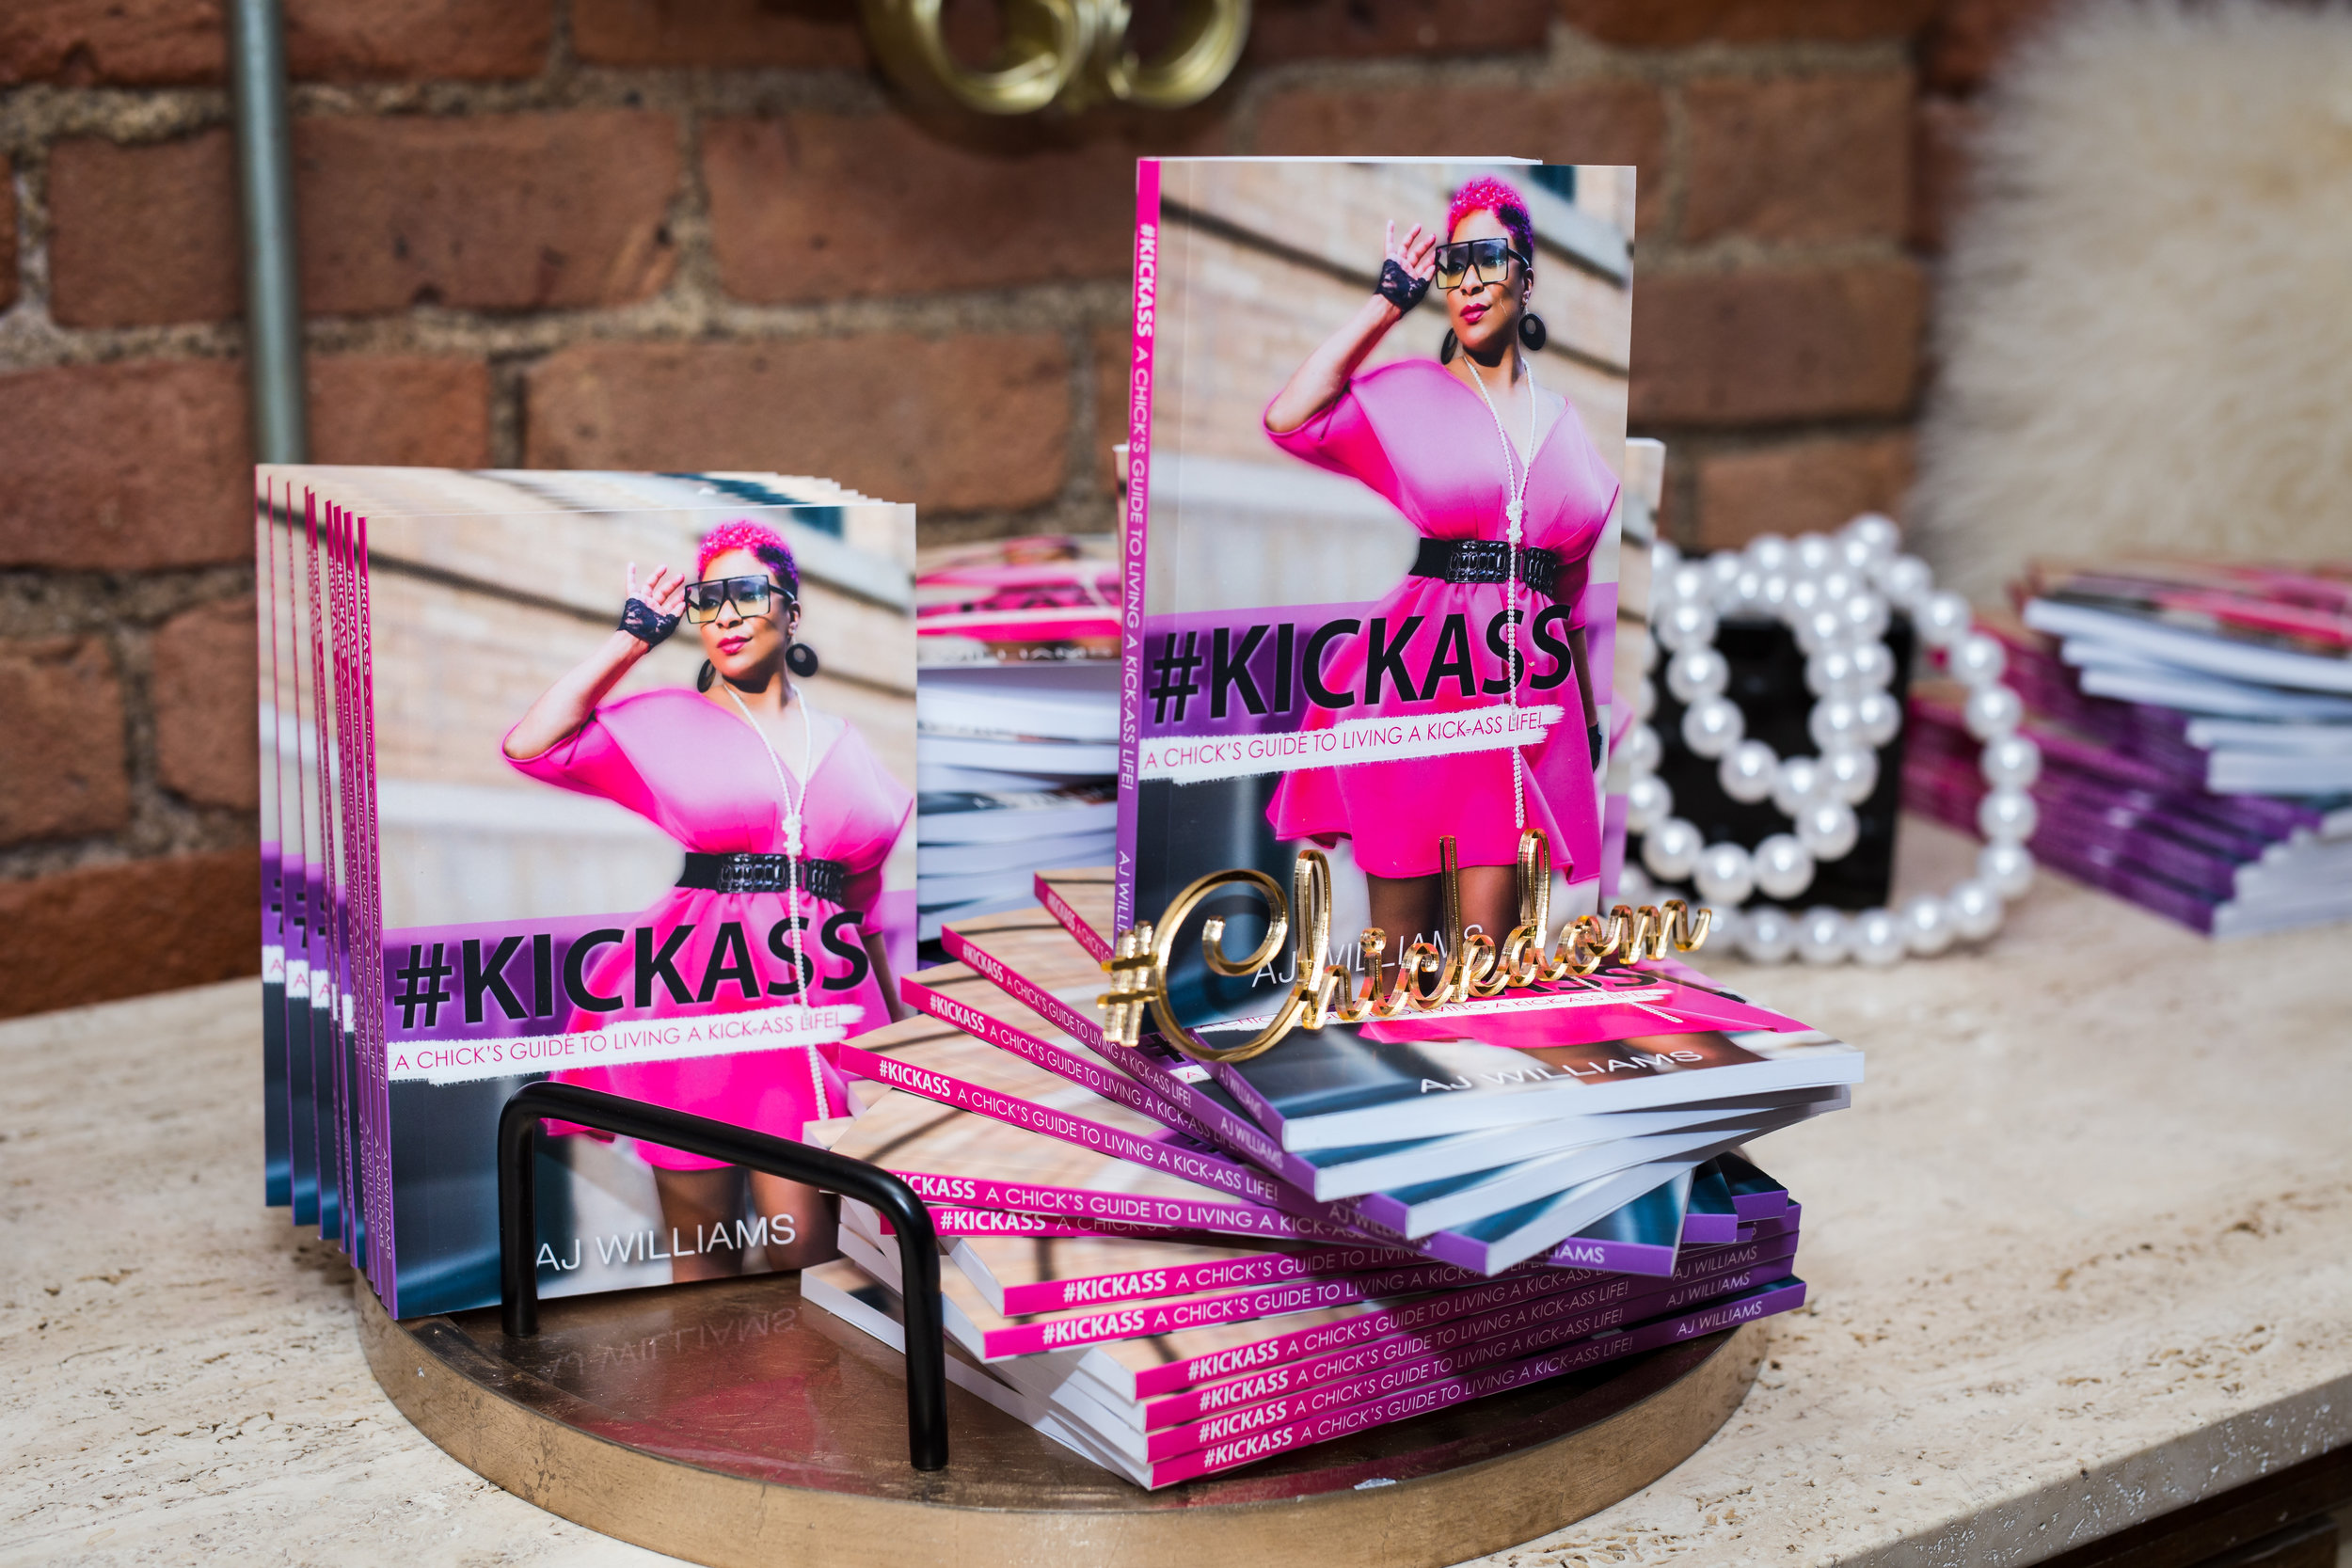 Book Launch Event - AJ Williams - #KICKASS: A CHICK'S GUIDE TO LIVING A KICK-ASS LIFE - Event Photography - Moon Reflections Photography - Detroit - Michigan - IMG_2995.jpg